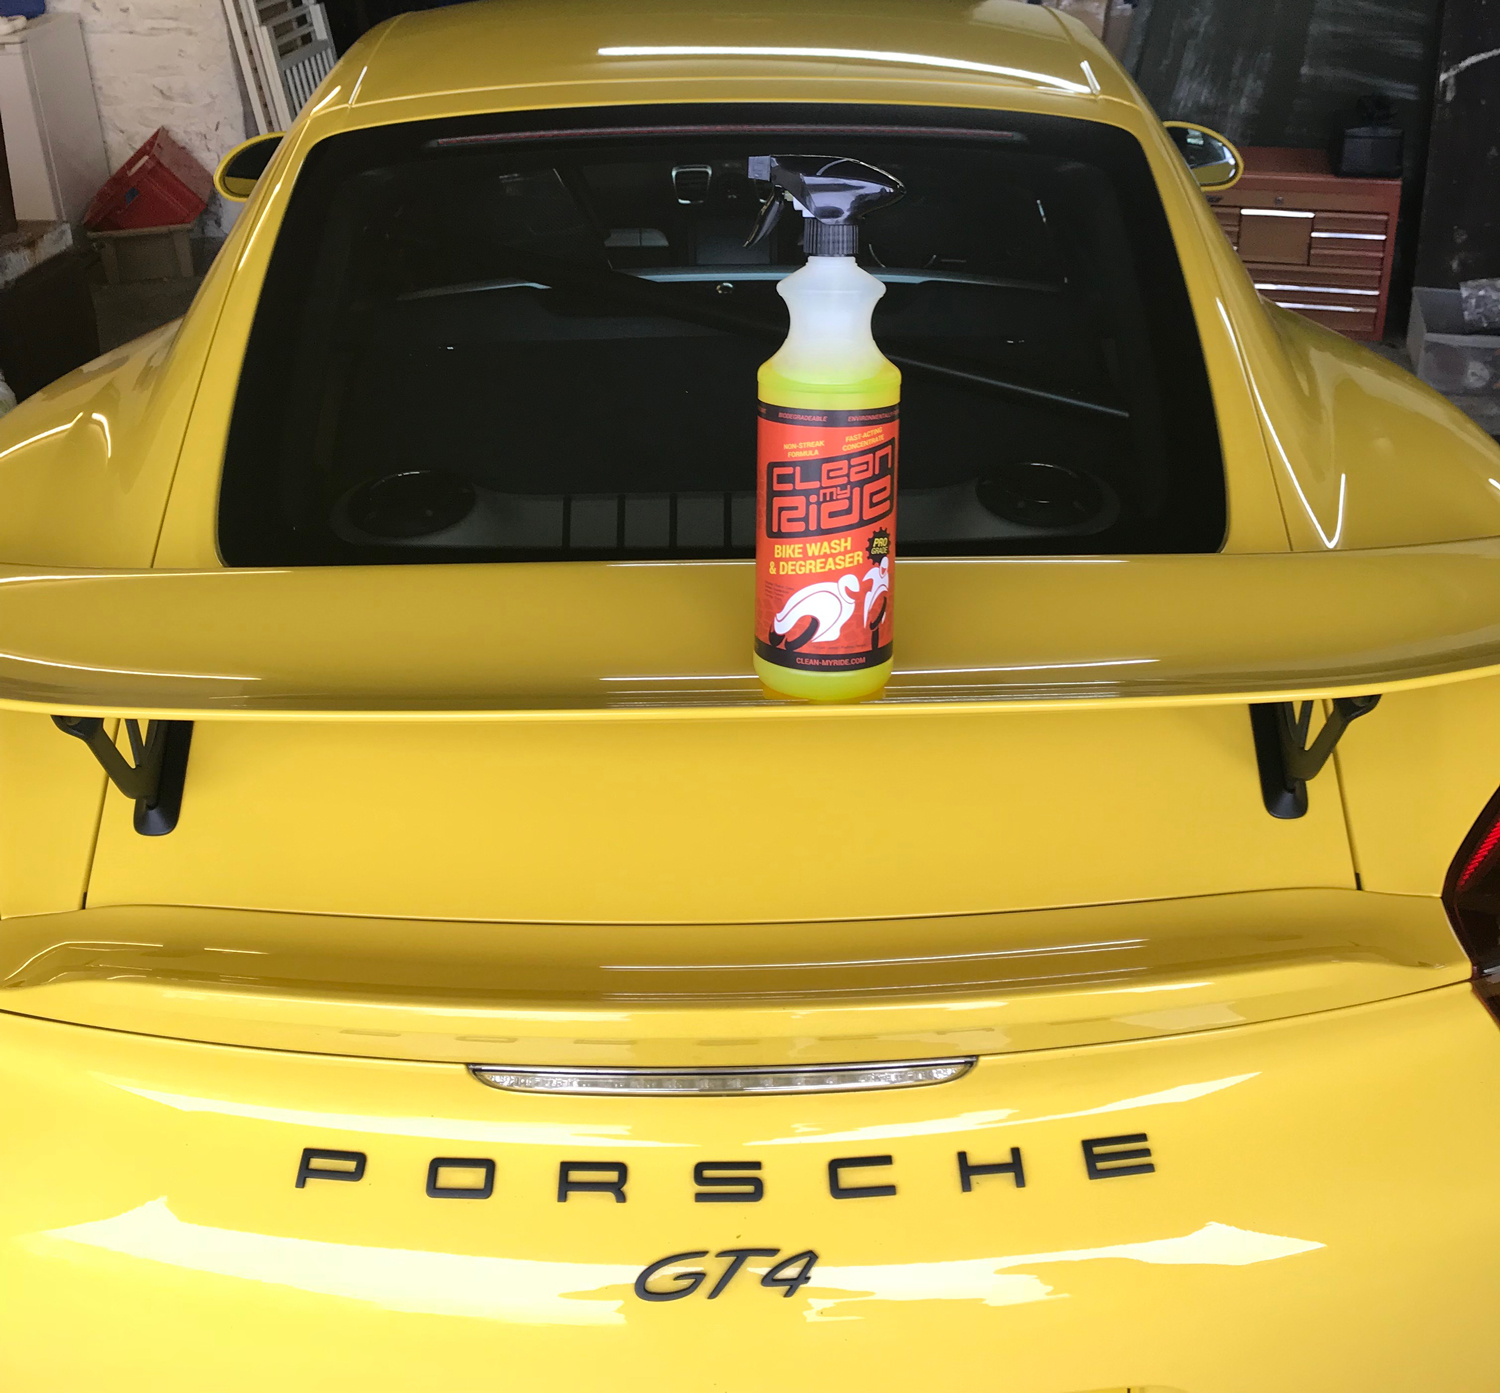 Clean MyRide combined bikewash degreaser is ideal for cleaning motorcycles, cars, karts, vans, boats even UPVC window frames, mountain bikes, road cycles, MTBs etc. It's safe on all surfaces, non-caustic, non-streak, environmentally friendly and biodegradable.